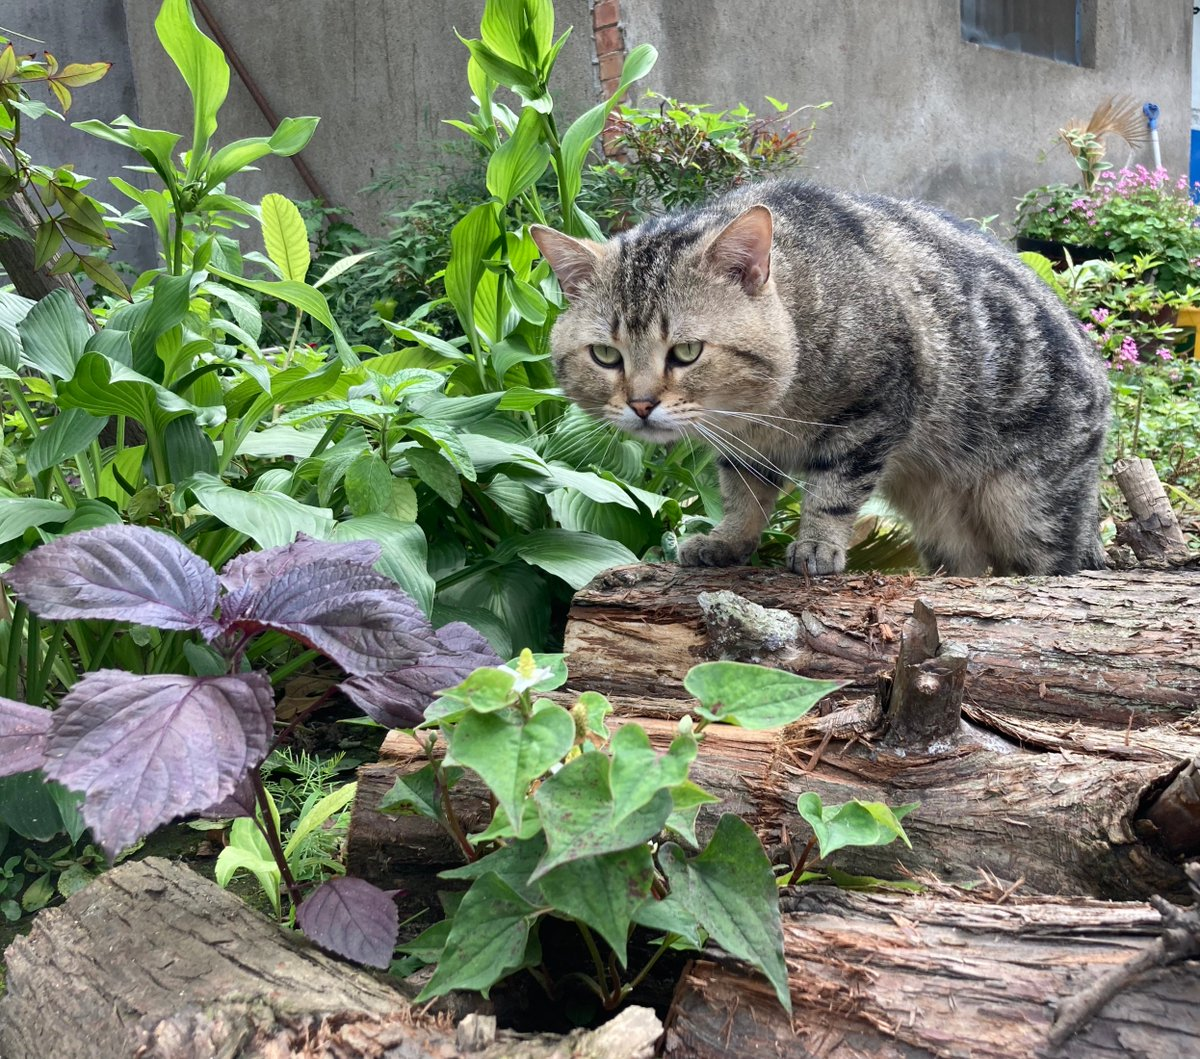 Stroll in the garden #cat pic.twitter.com/ELPxT9WVh4